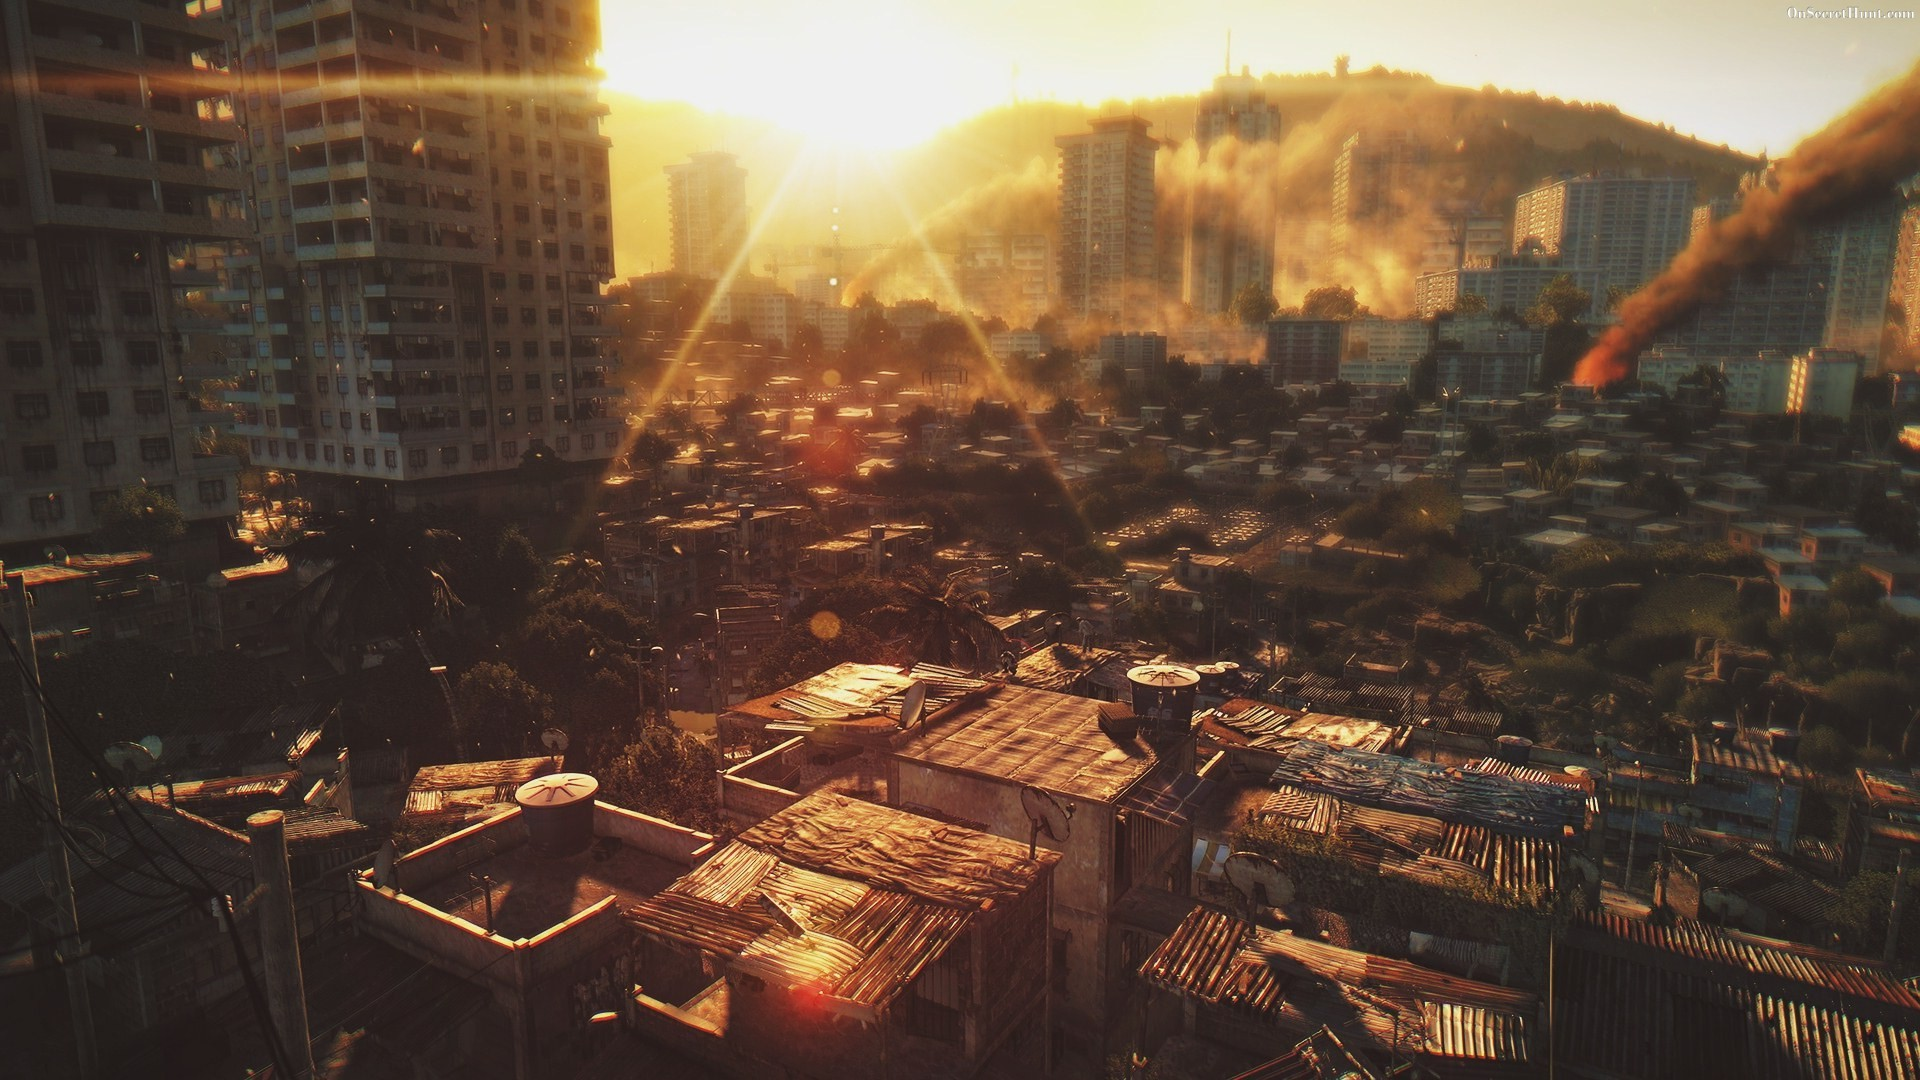 Dying Light Hd Wallpaper Pic Wje0016174 Dying Light Wallpaper 4k 354285 Hd Wallpaper Backgrounds Download